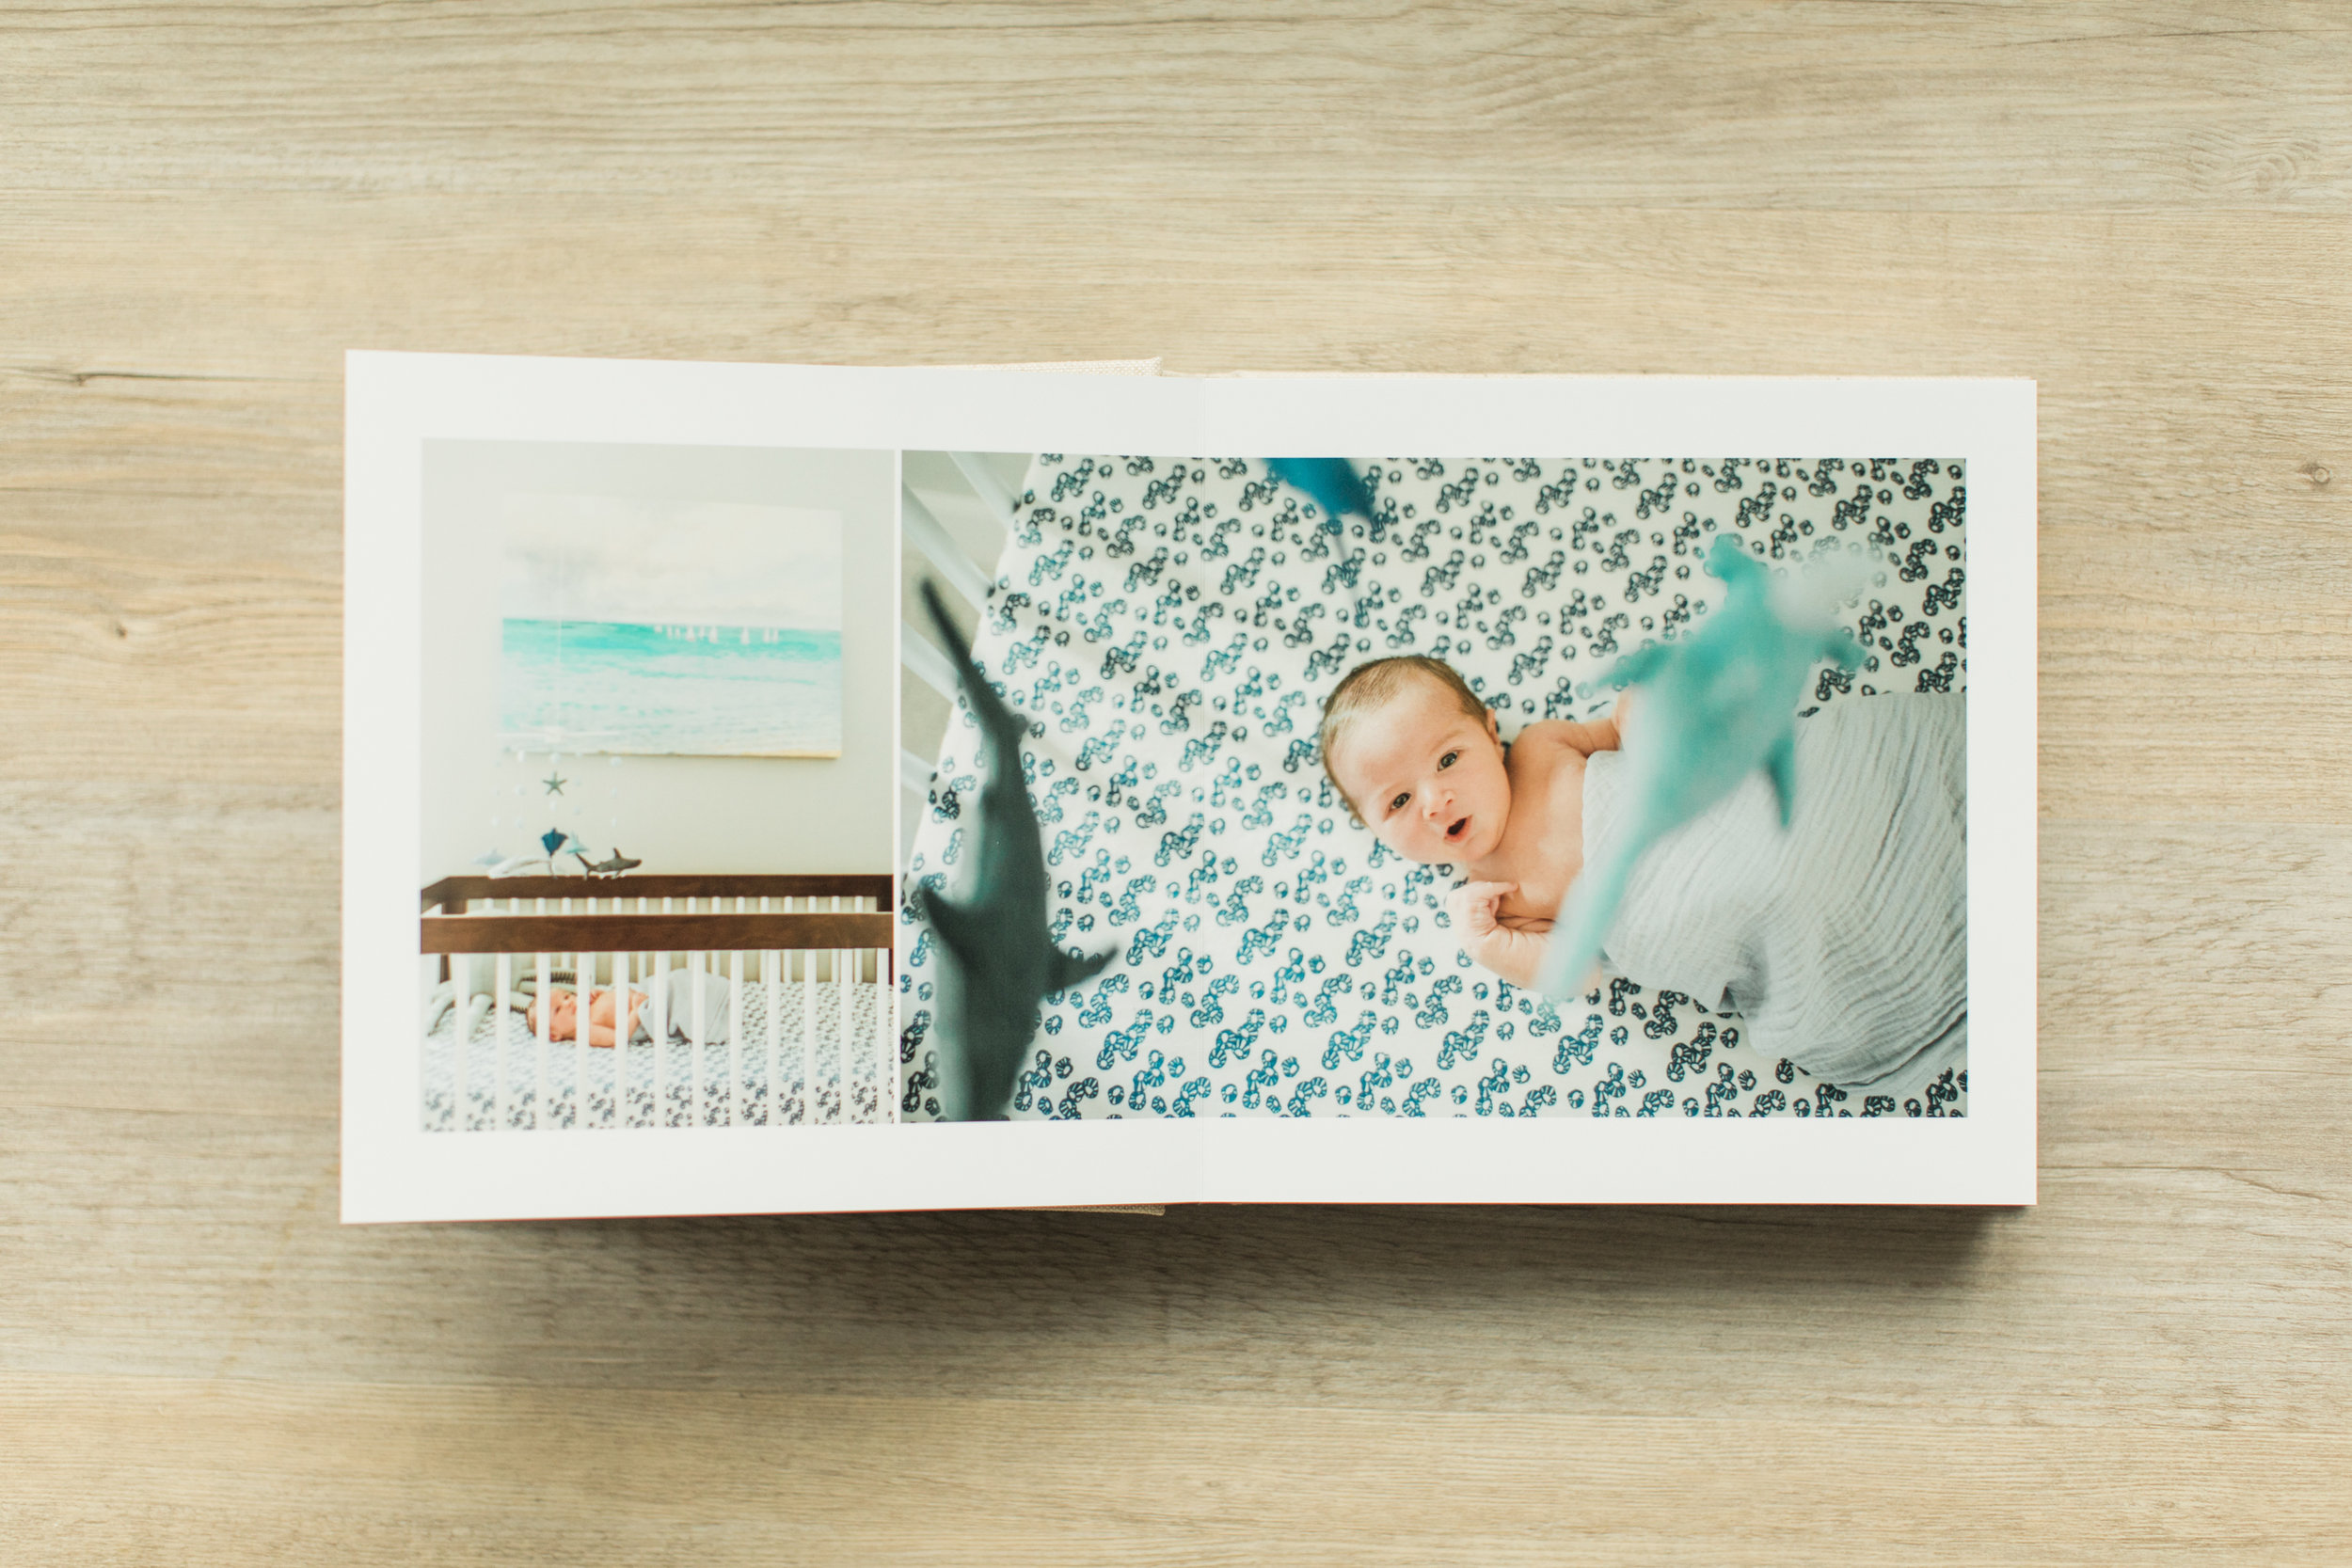 Inside pages of a baby photo album.